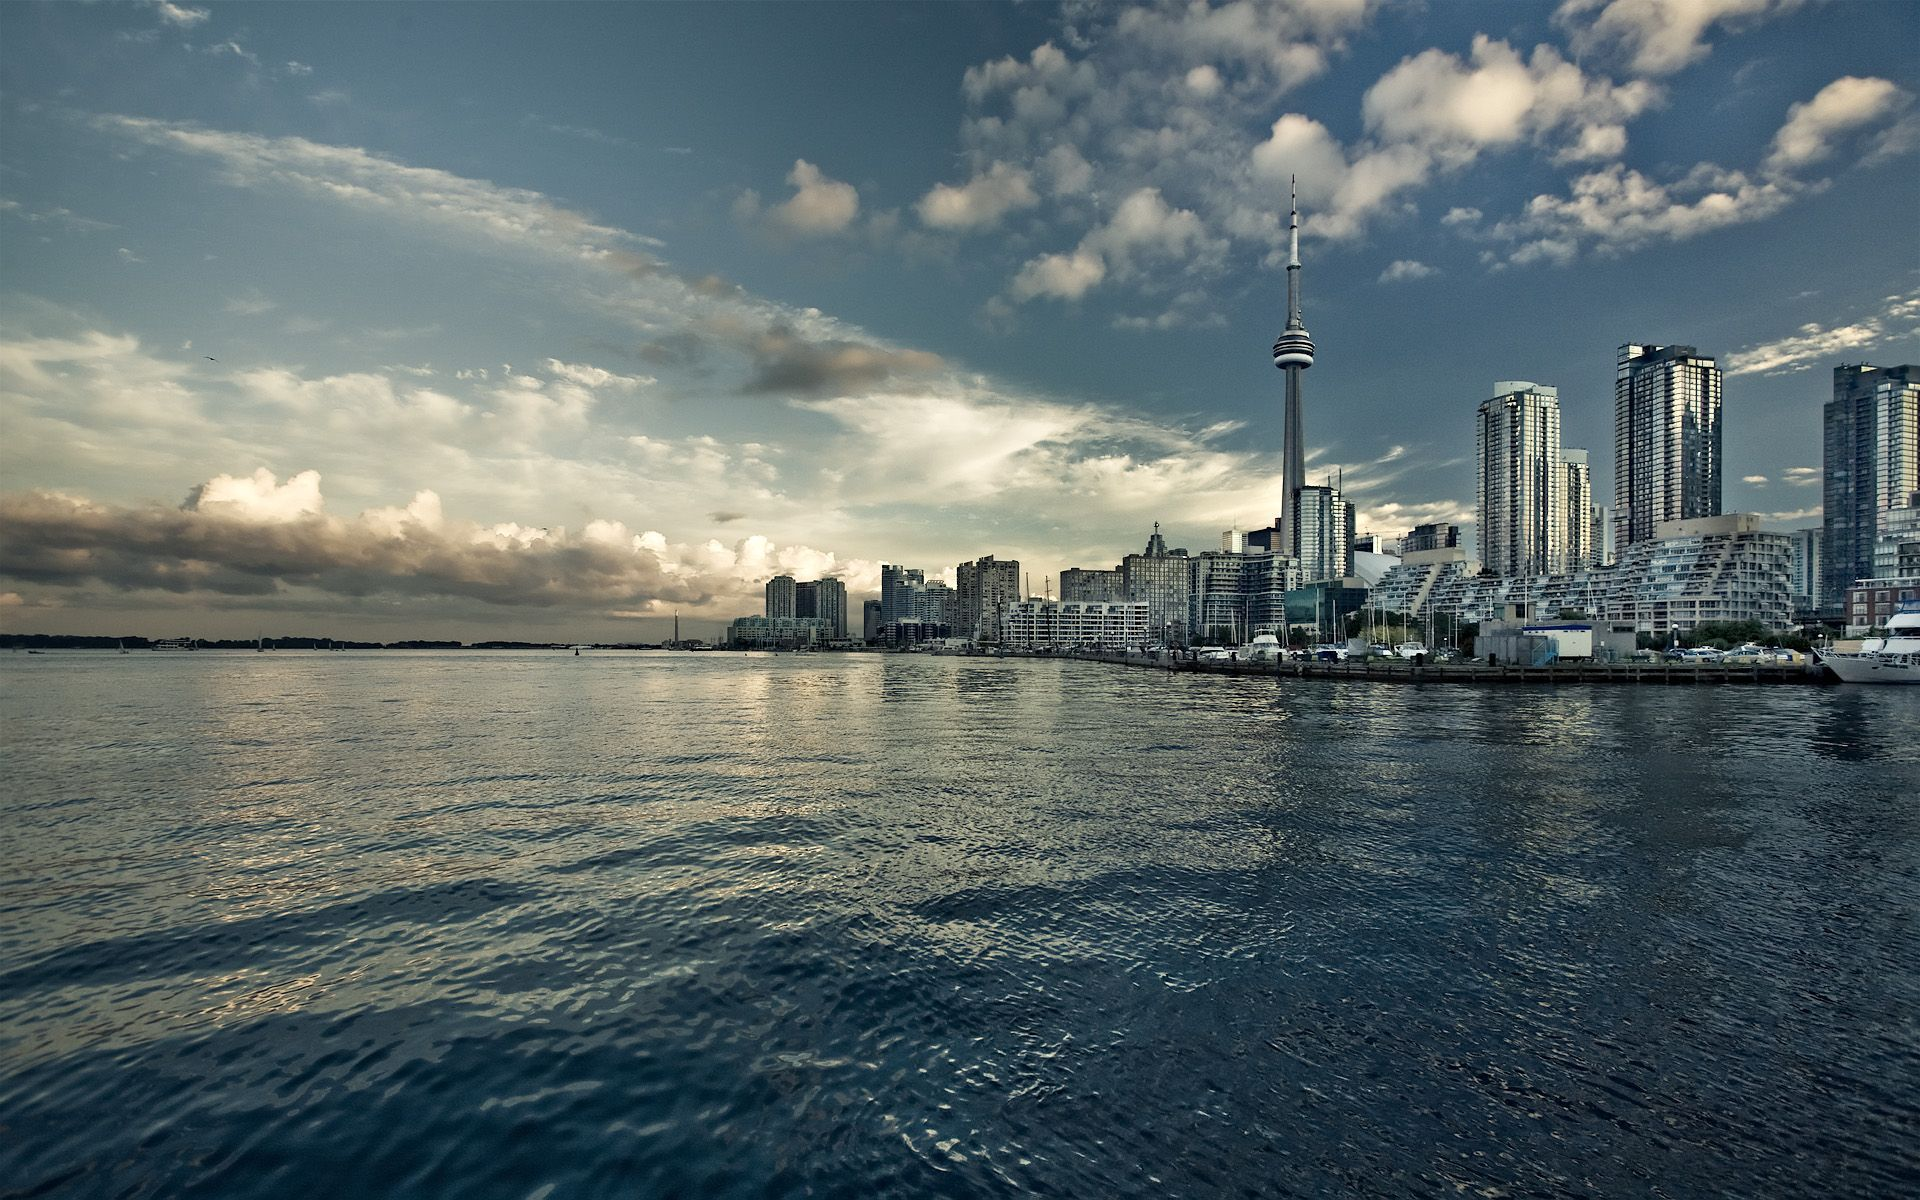 Toronto HD Wallpaper 1920x1080 Lake Ontario   Toronto HD Wallpaper 1920x1200